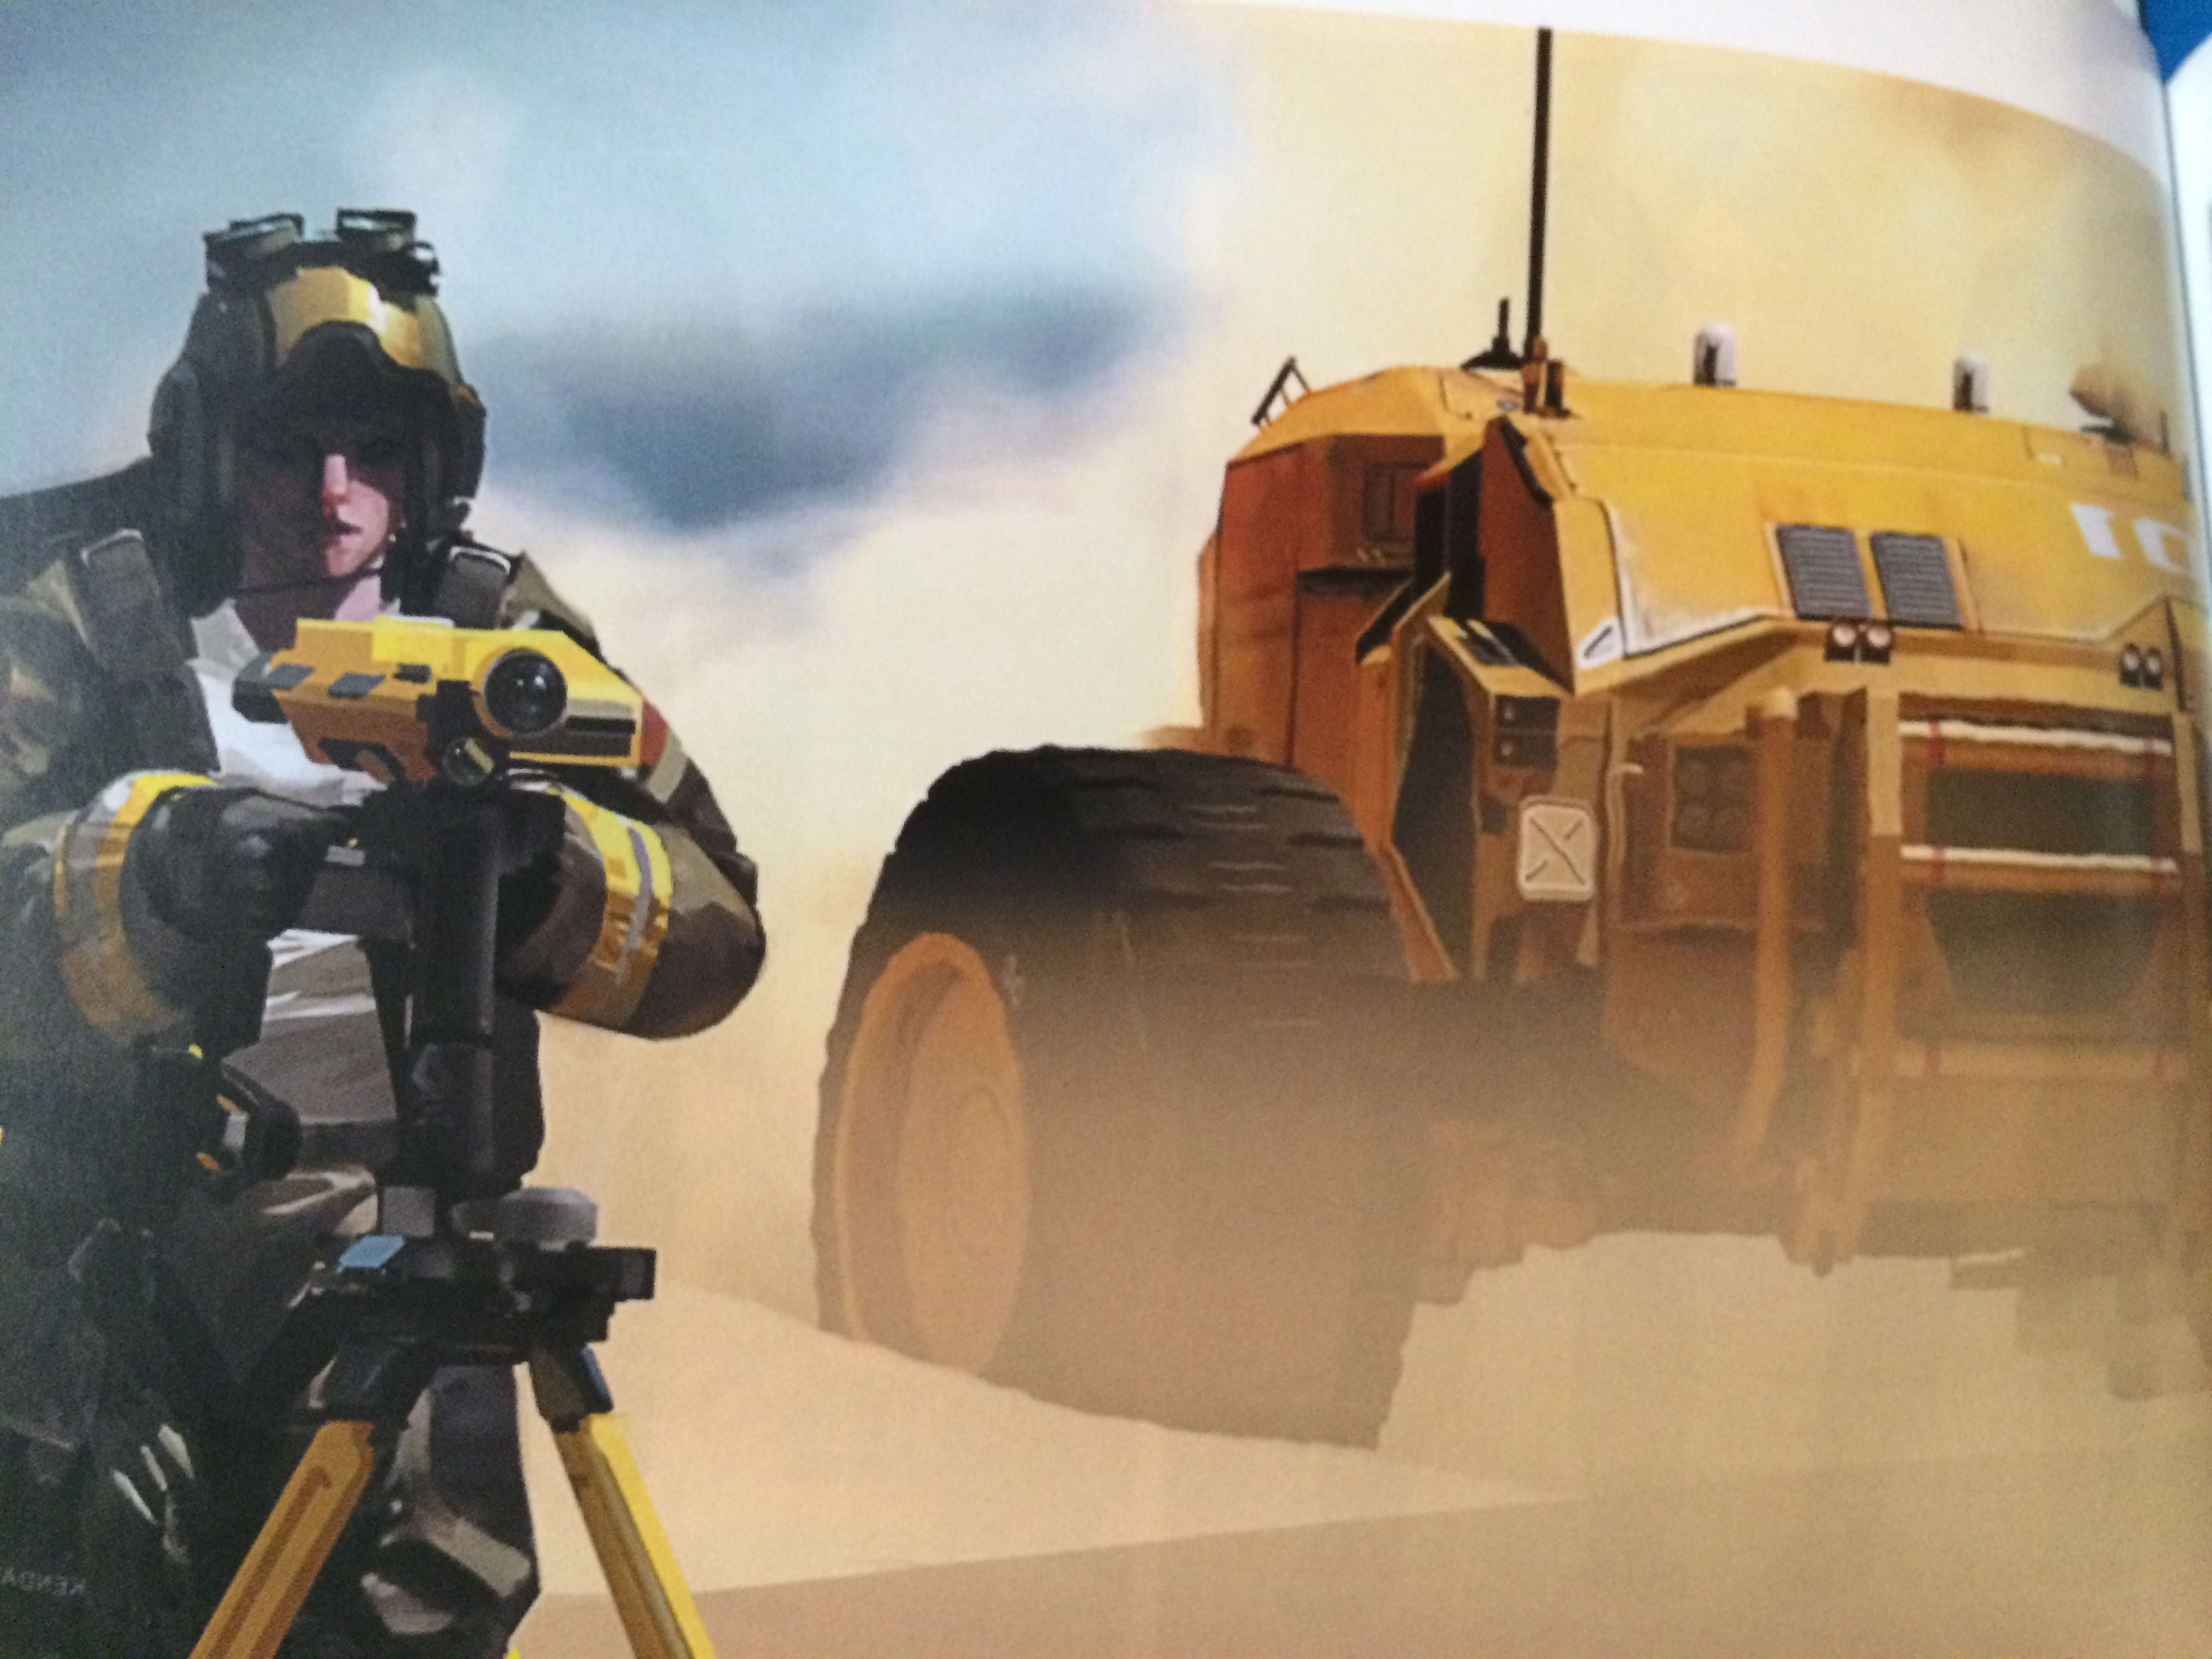 Homeworld Deserts of Kharak Collector's Edition Concept Art - Survey with Rachel and Baserunner